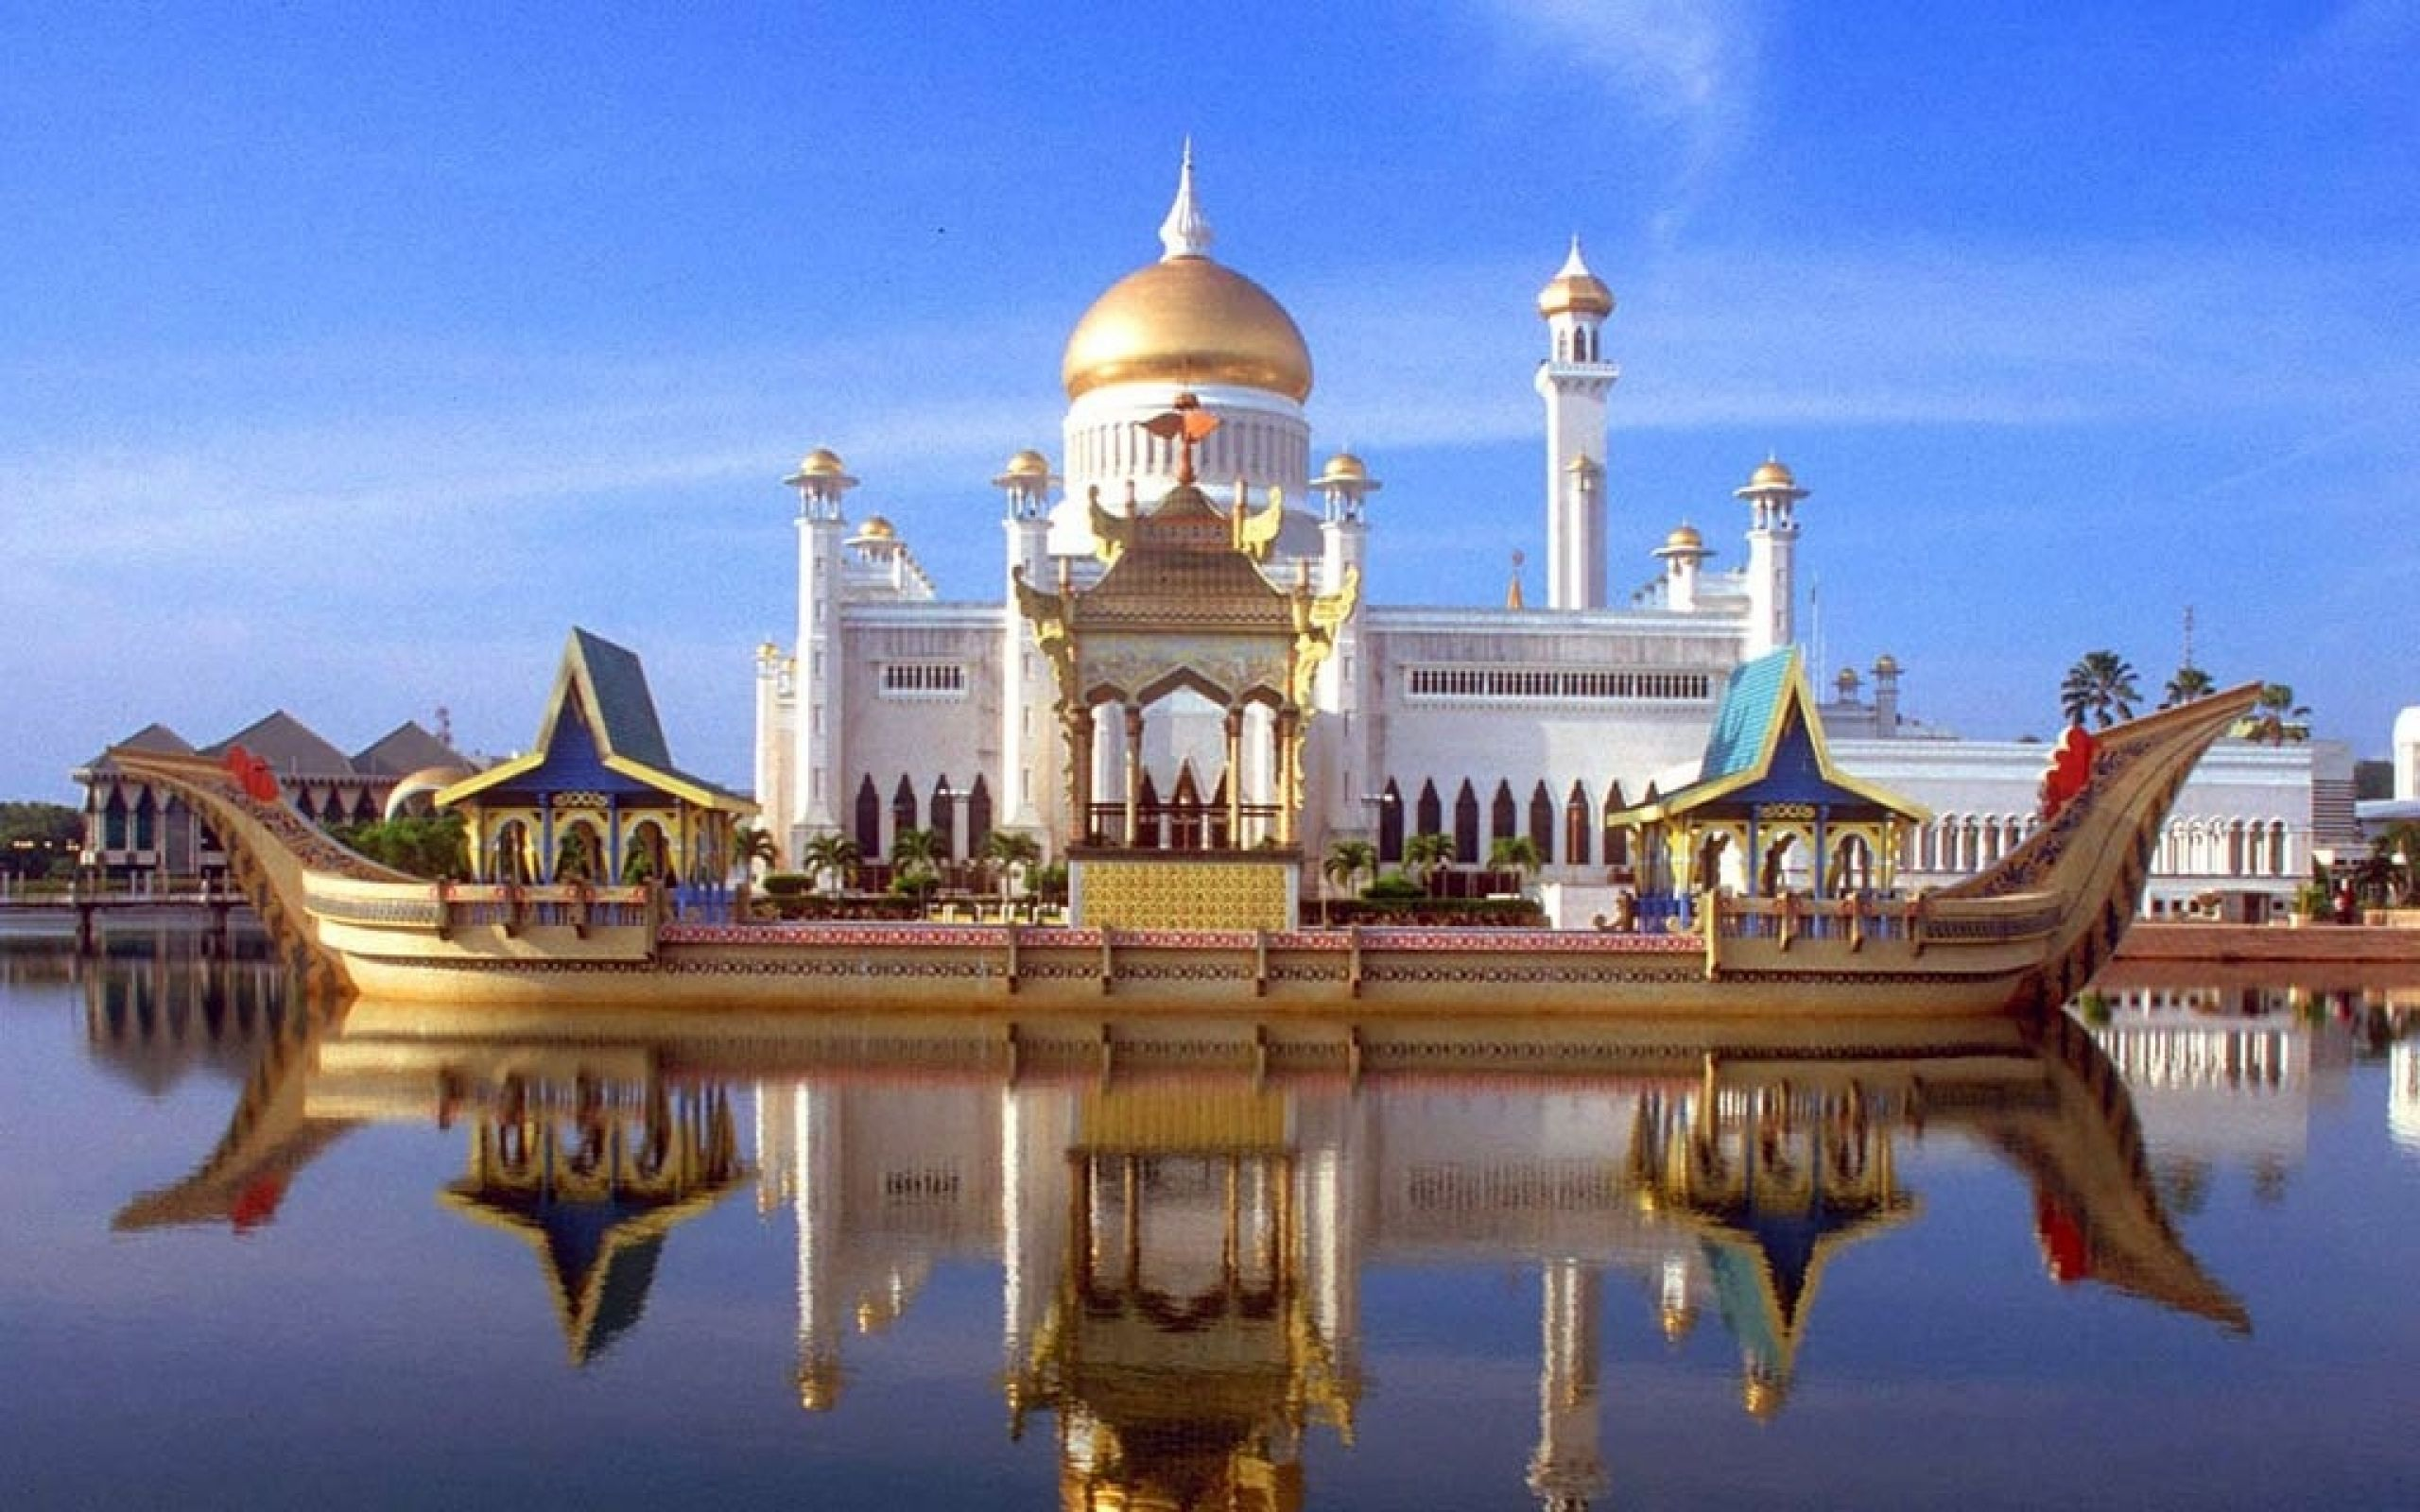 Bandar Seri Begawan Brunei Beautiful Mosques Mosque Best Countries To Visit